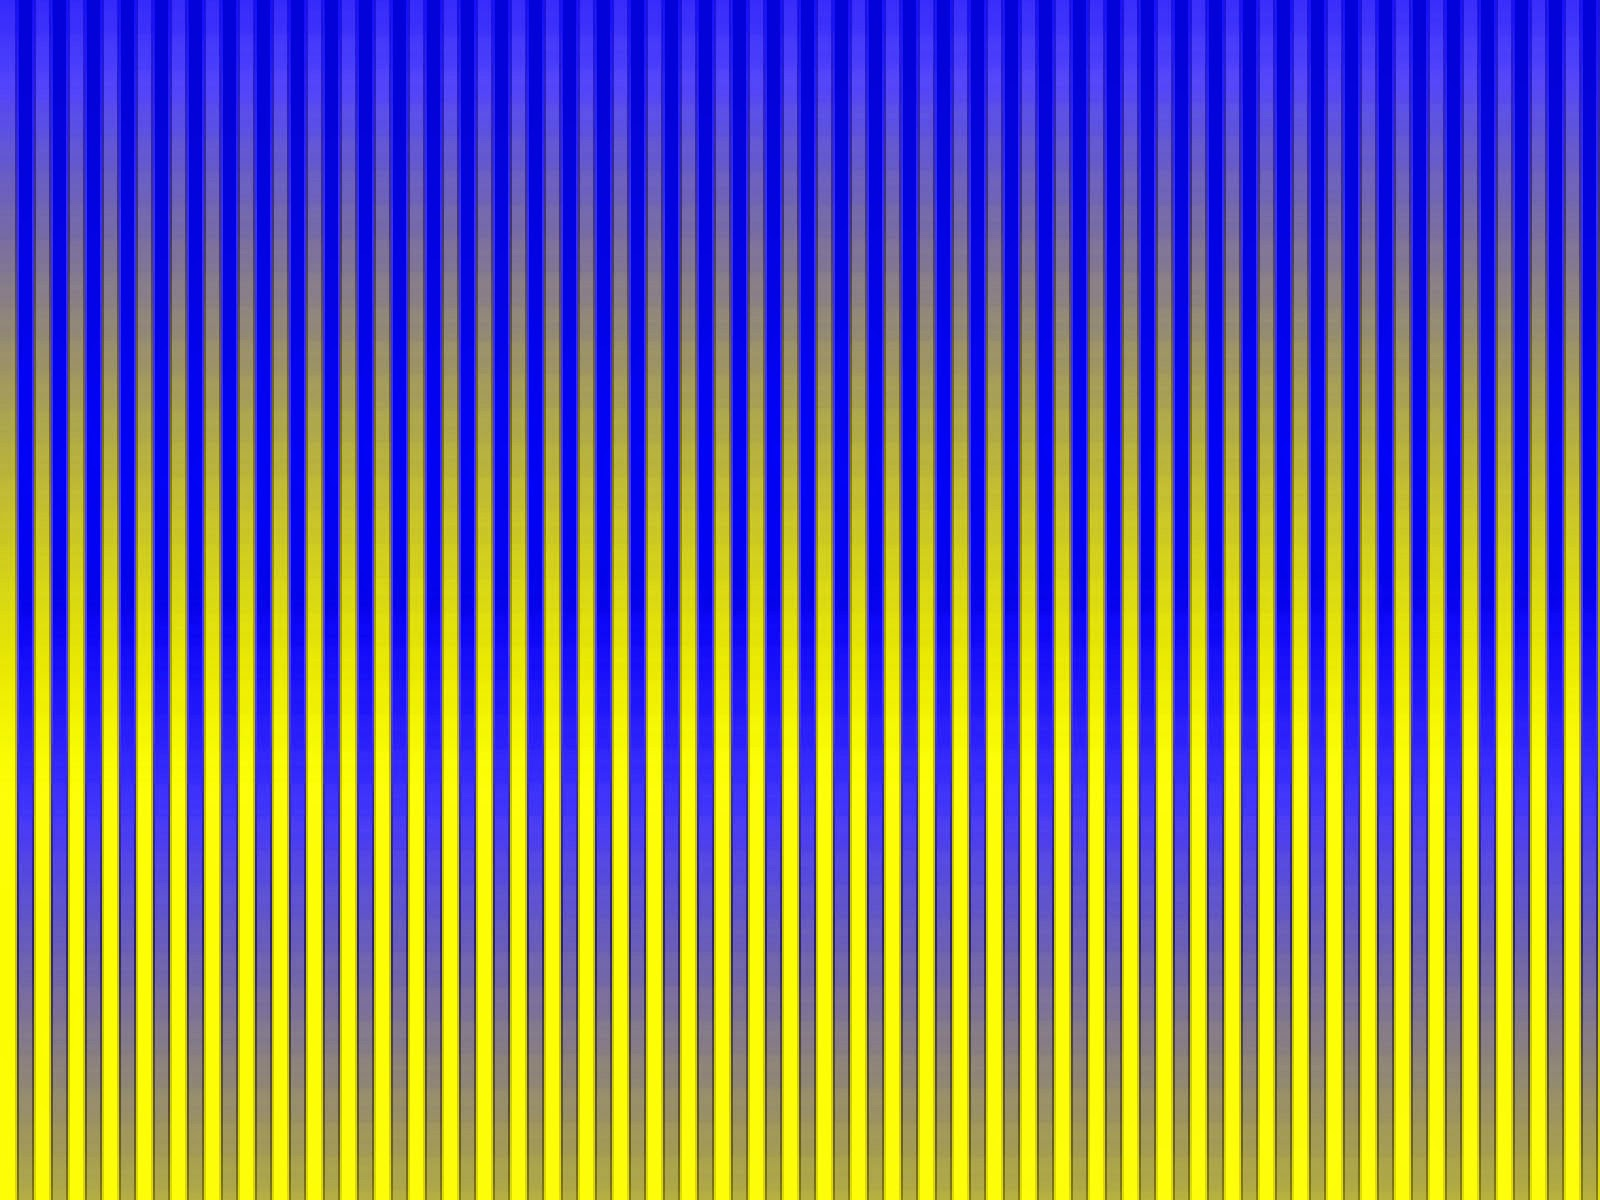 Download Blue And Yellow Striped Wallpaper Gallery